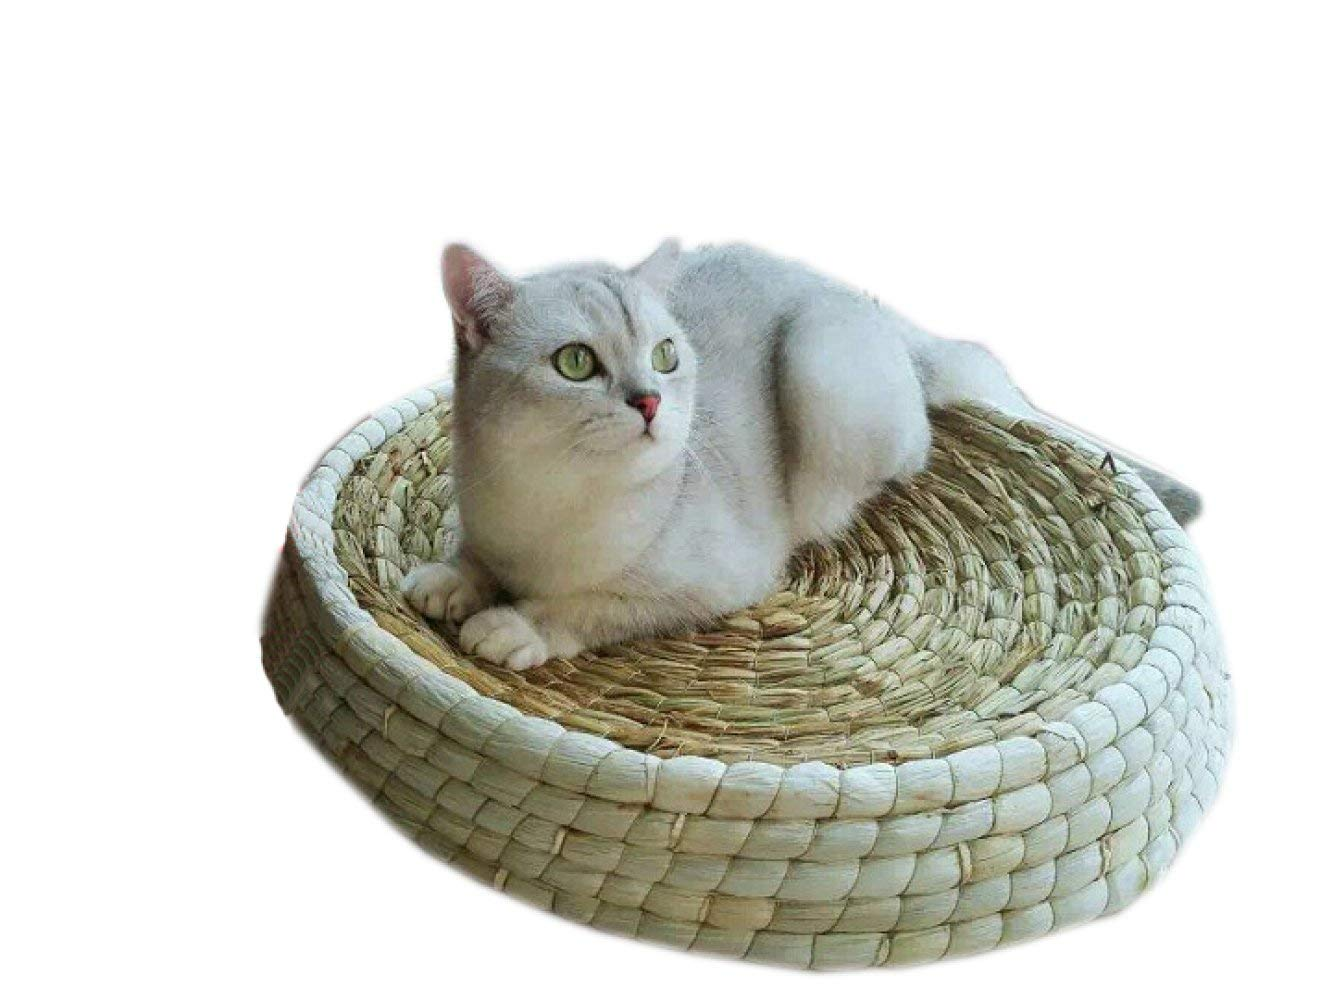 50 Pet Bed Cat Supplies Straw Cat Litter Dog Kennel Summer Cool Breathable Hygroscopic Cat Hammock Grabbing Bowl Type Hen Egg Lay,45 (color   50)